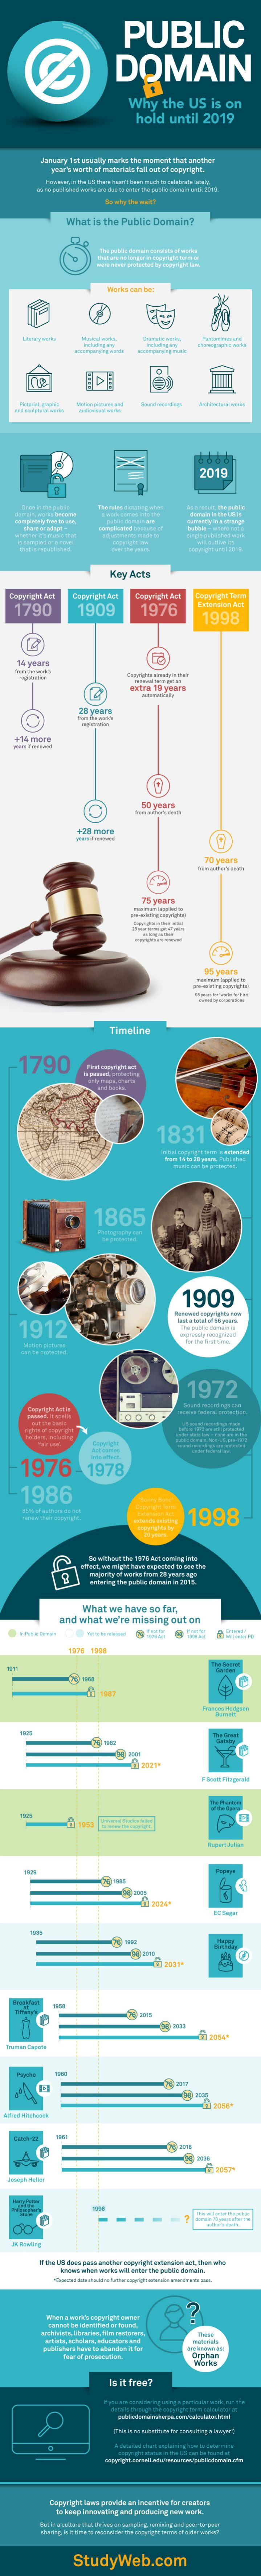 Infographic: Public Domain: Why the US is on Hold Until 2019